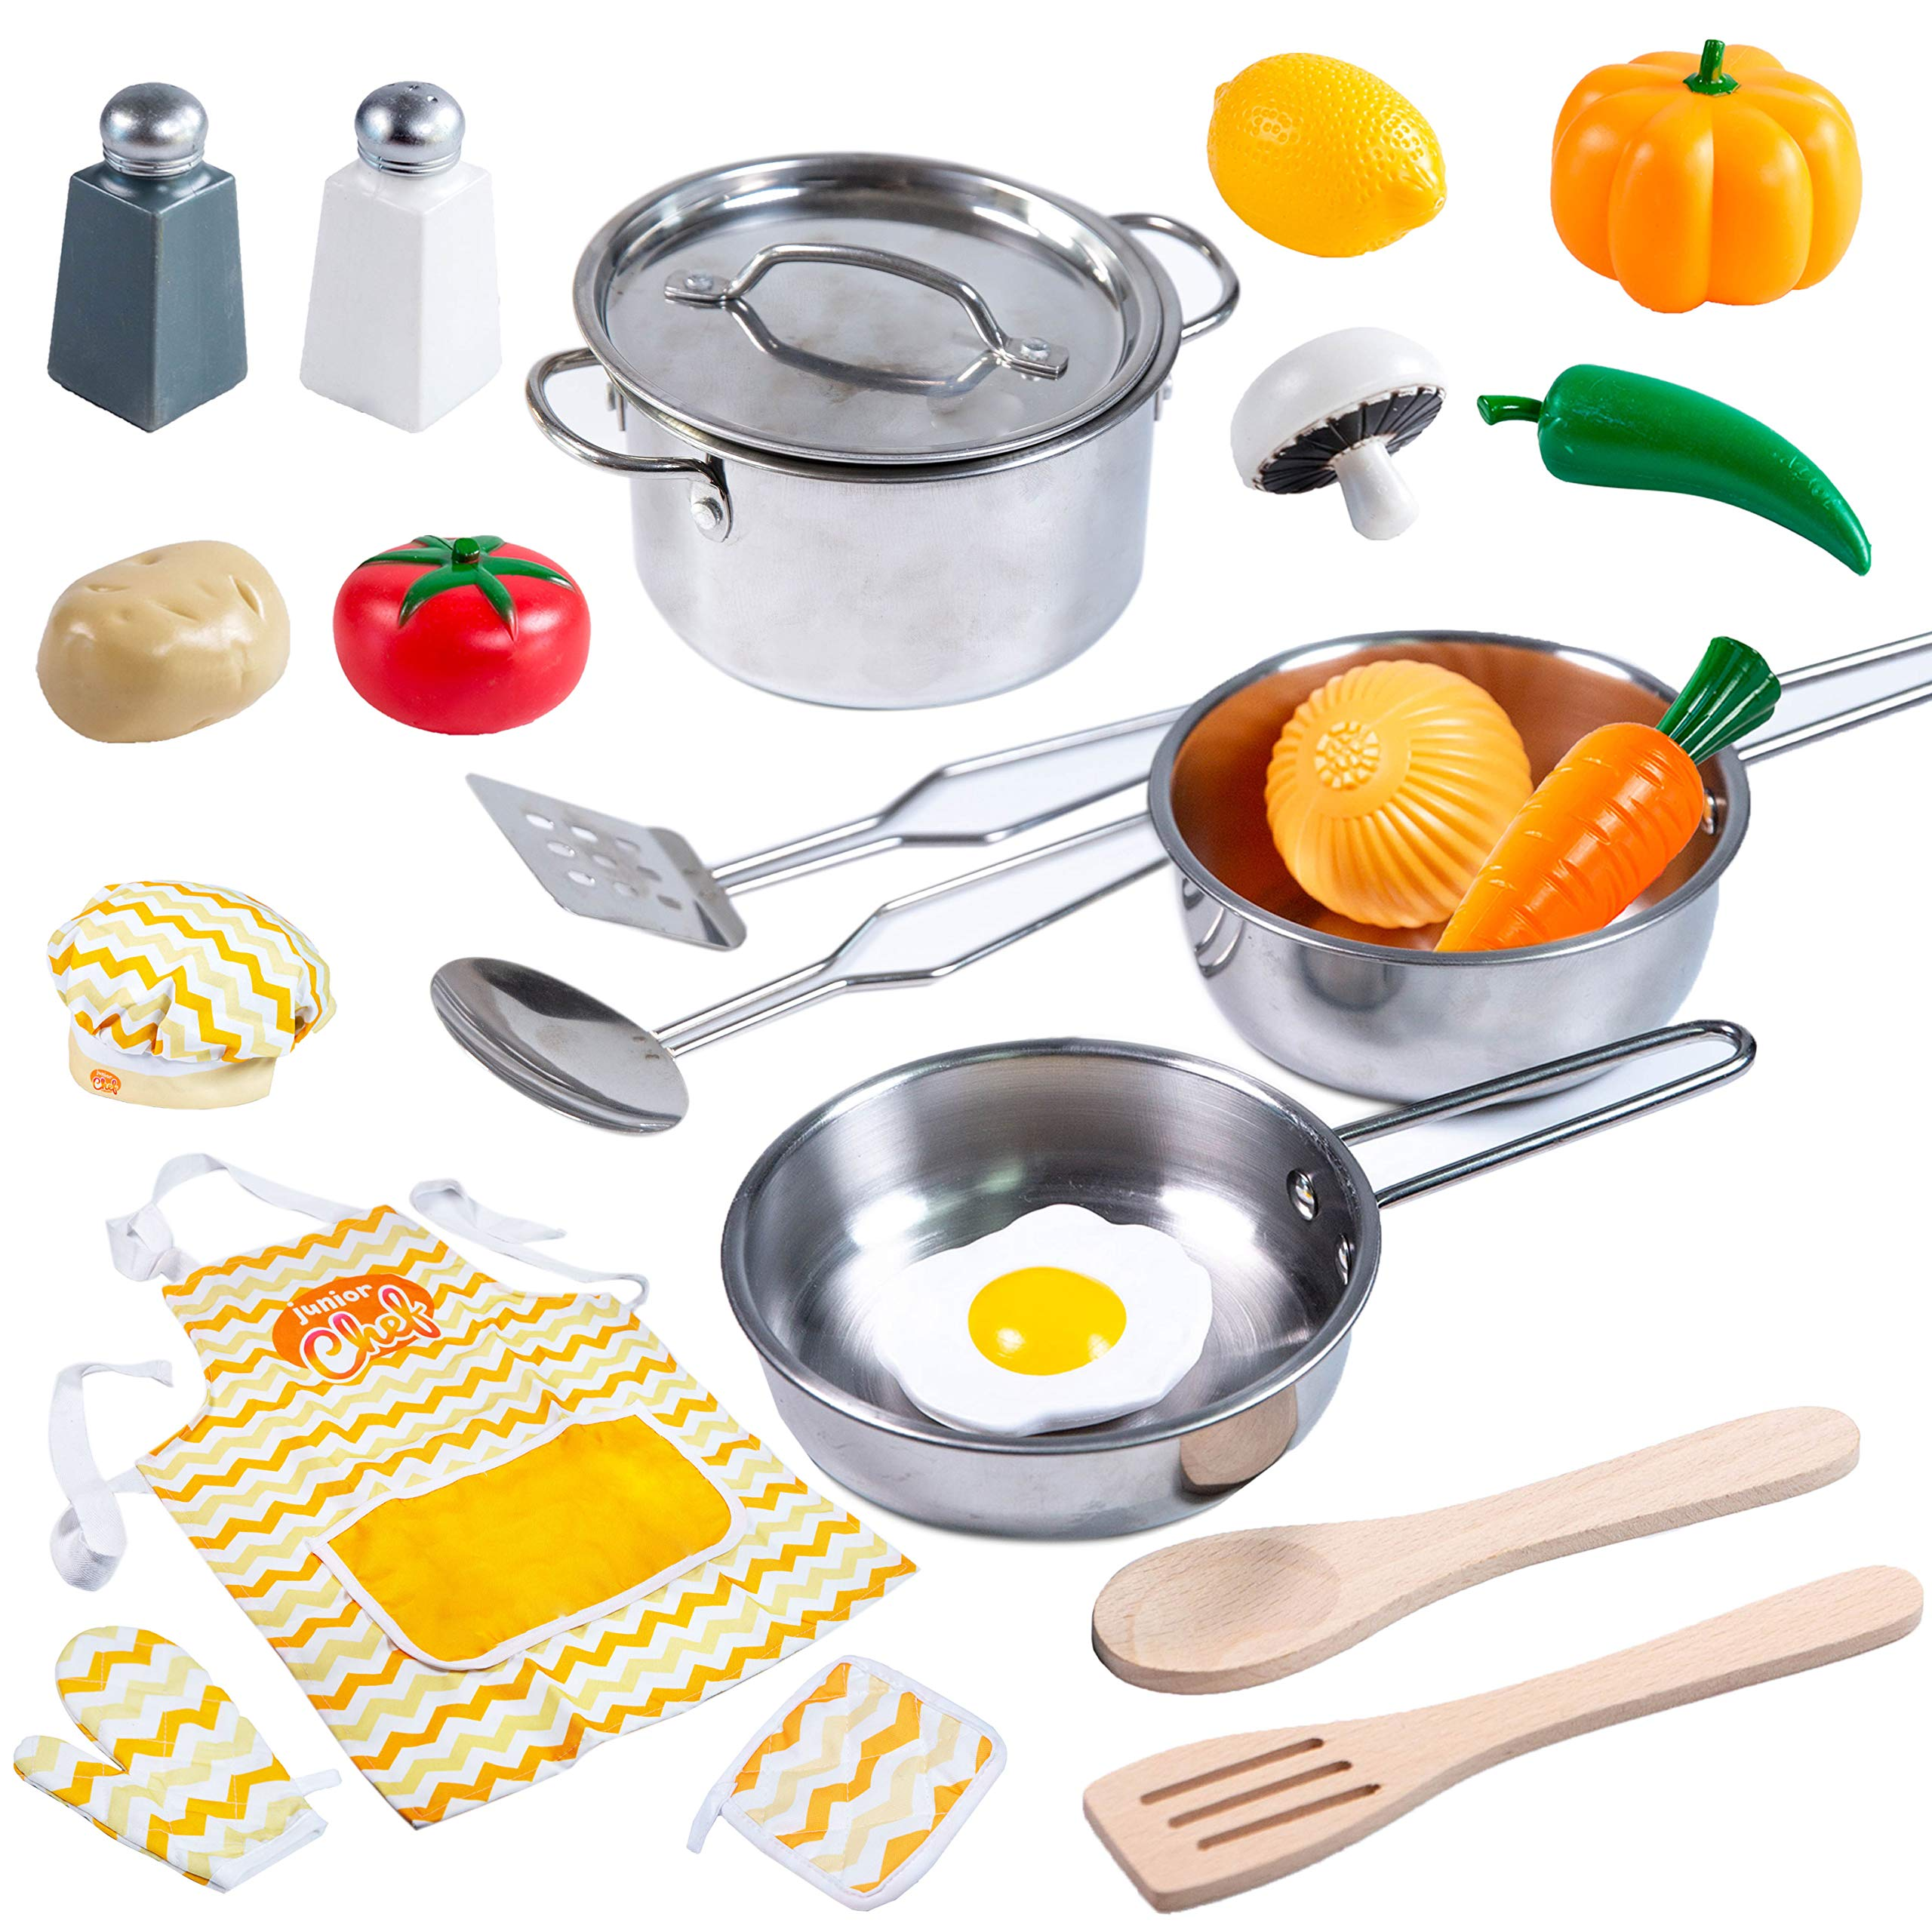 Kitchen Pretend Play Accessories Toys with Stainless Steel Cookware Pots and Pans Set, Cooking Utensils, Apron & Chef Hat, and Grocery Play Food for Kids Boys, Toddler and Girls Gifts Learning Tool. by JOYIN